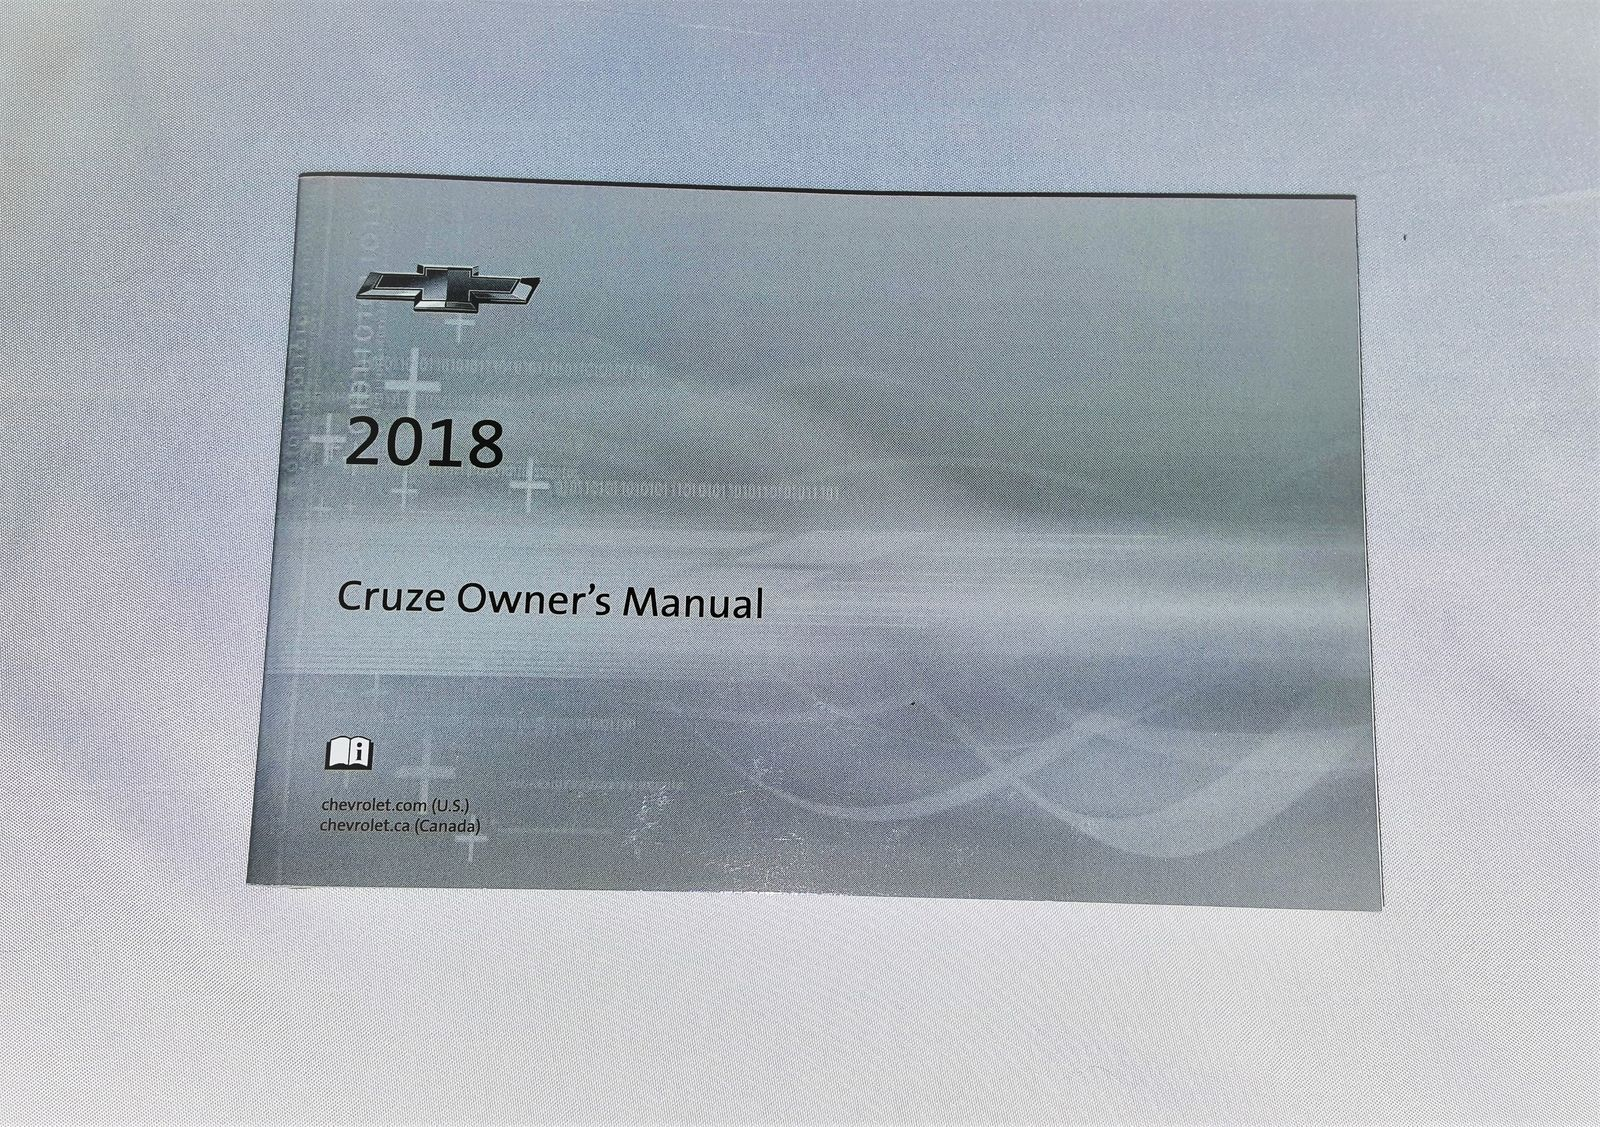 Chevrolet Cruze Owners Manual: Phone